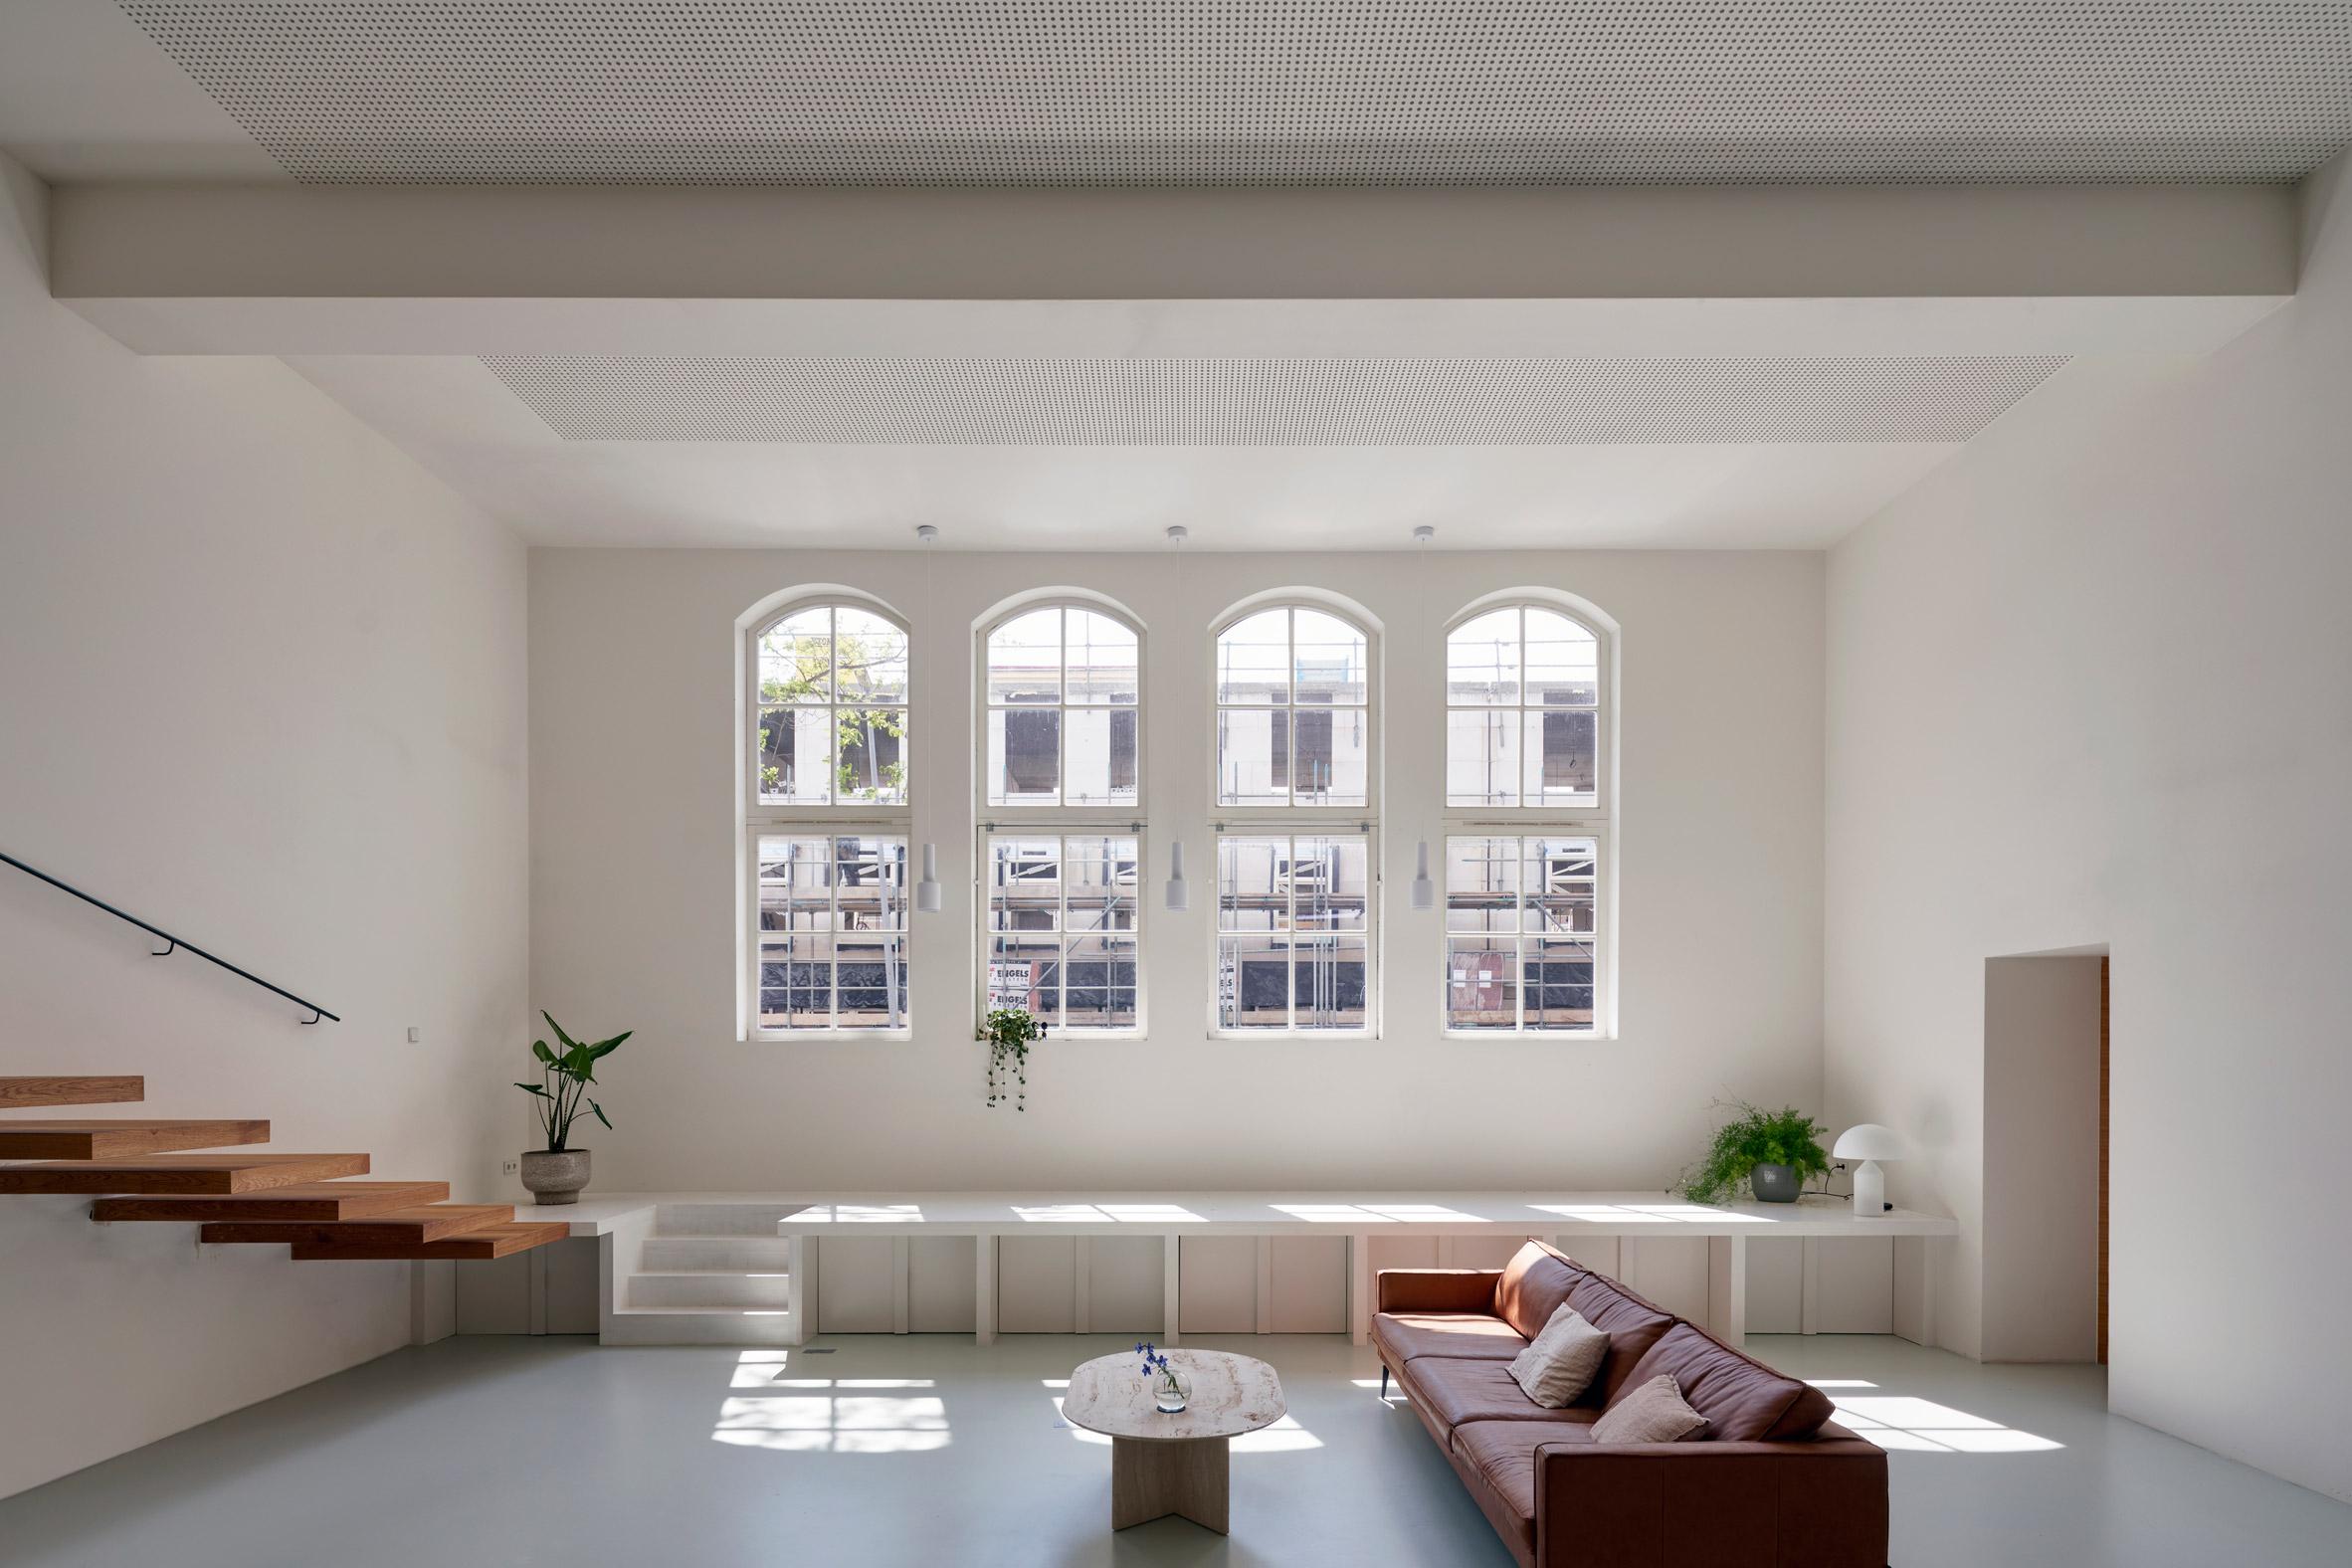 Spacious modern loft used to be a school gym